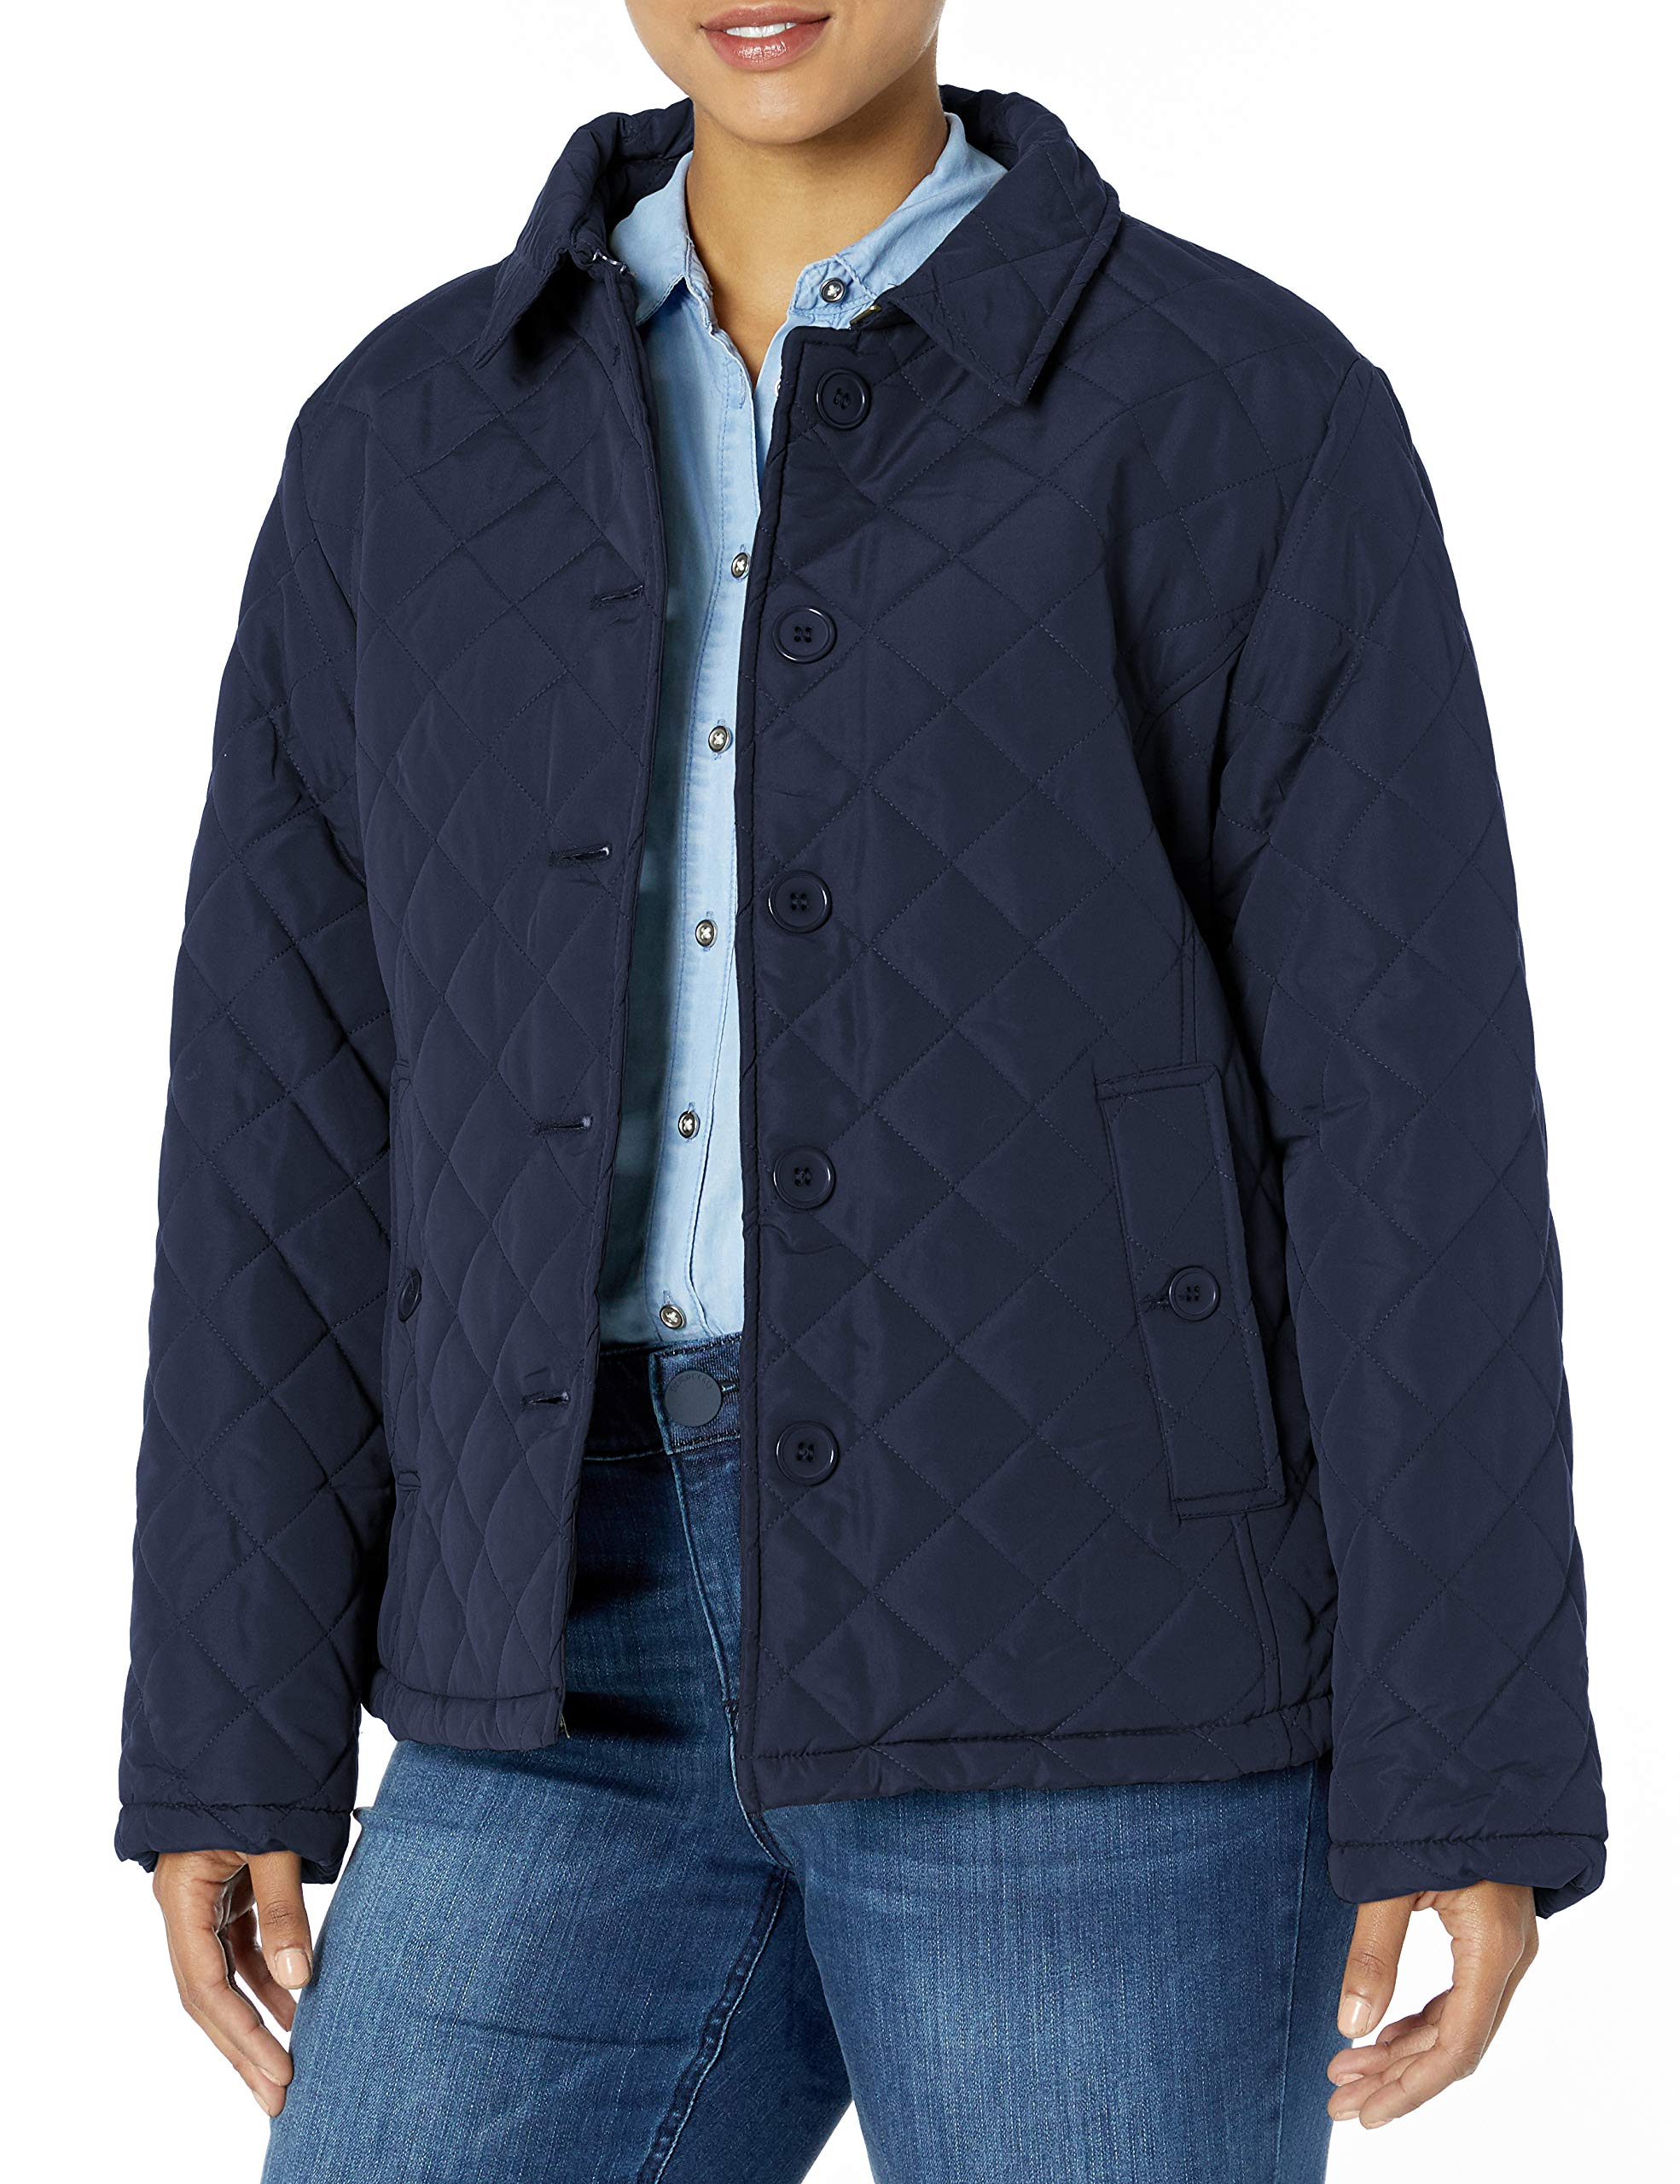 Big Chill Women's Plus Size Diamond Quilted Jacket with Fold Collar, Navy, 2X by Big Chill